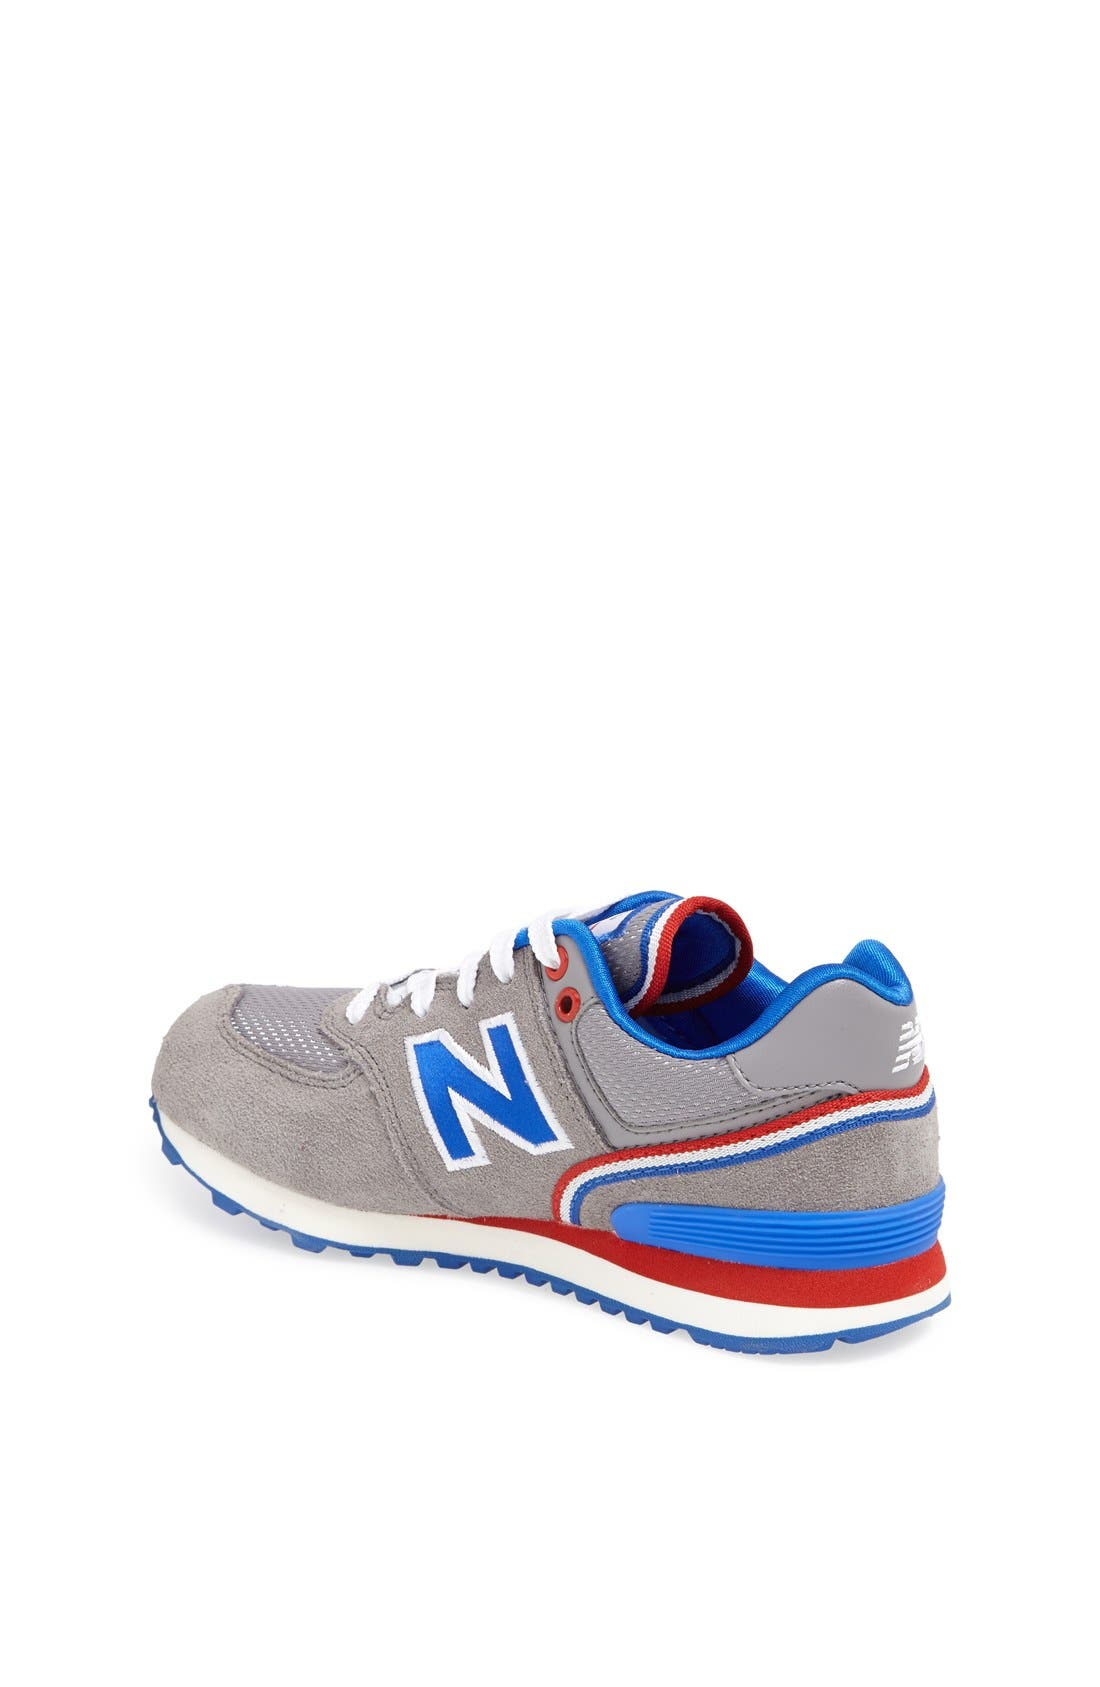 Alternate Image 2  - New Balance '574 Jacket' Sneaker (Baby, Walker, Toddler, Little Kid & Big Kid)